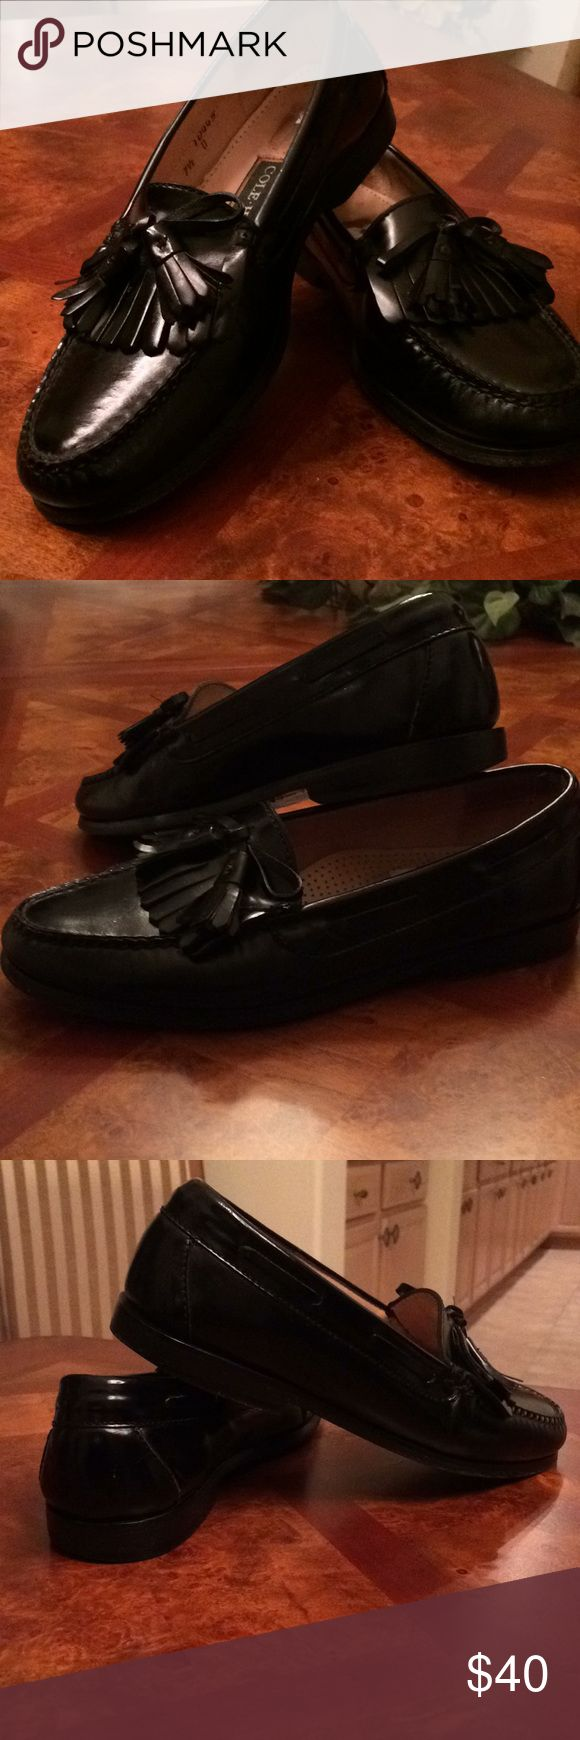 Men's Cole Haan Tassel Loafers. Superb Condition. Worn a couple of times. As you can see from pictures they are like new. Cole Haan Shoes Loafers & Slip-Ons